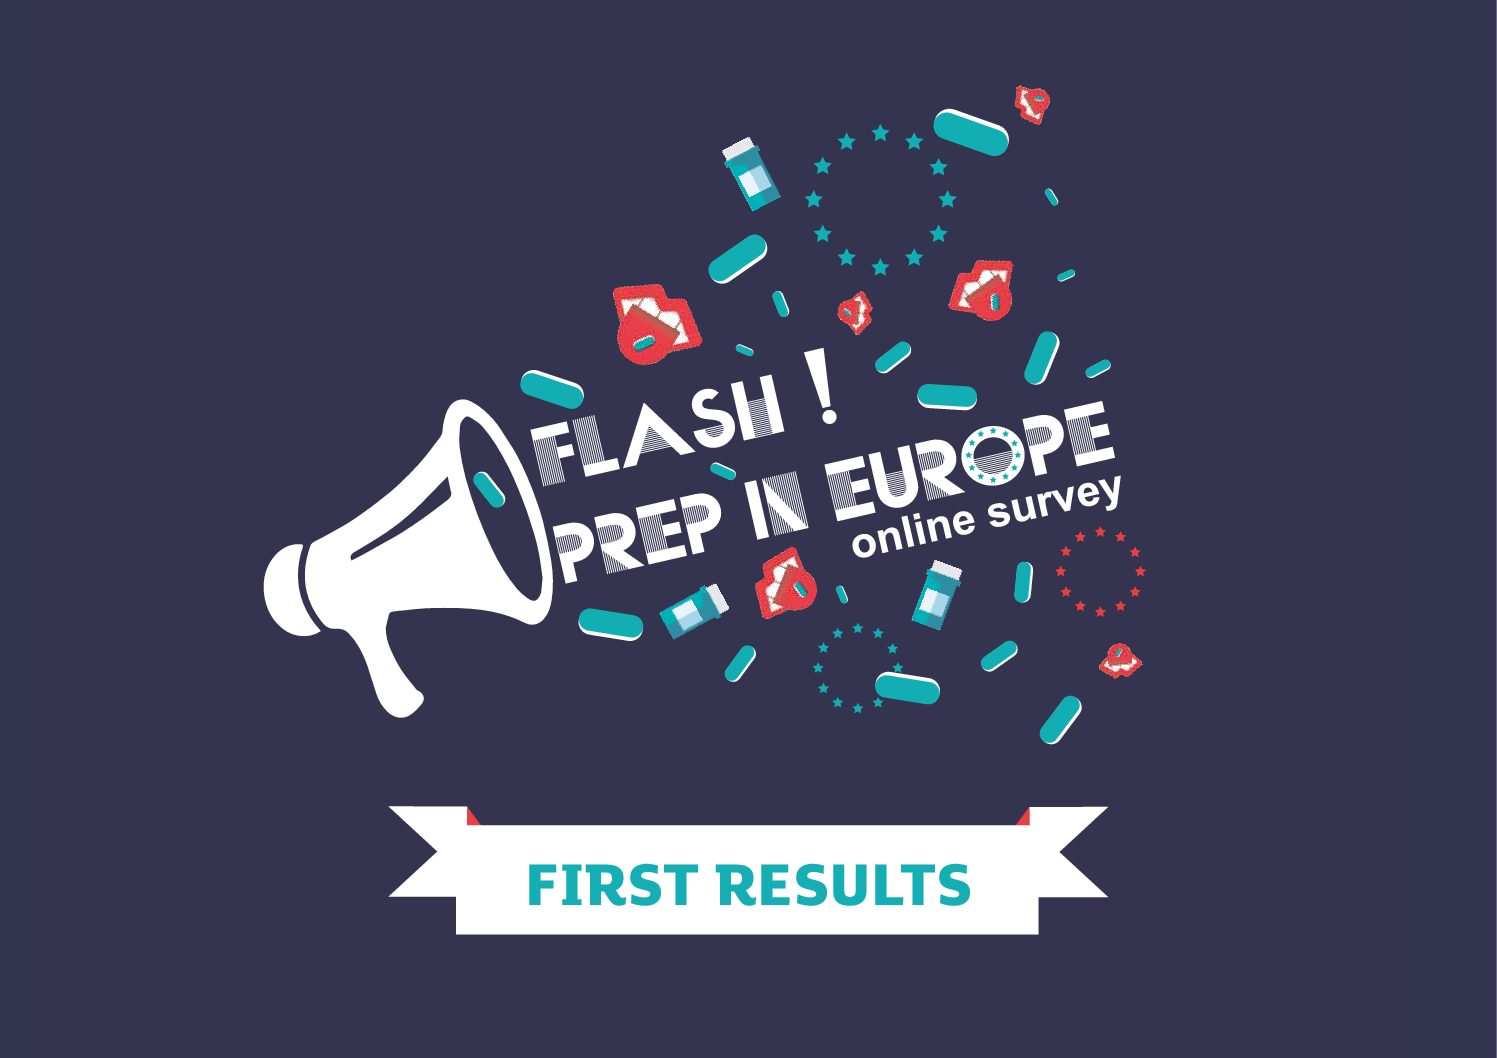 First results of the flash! PrEP in Europe online survey